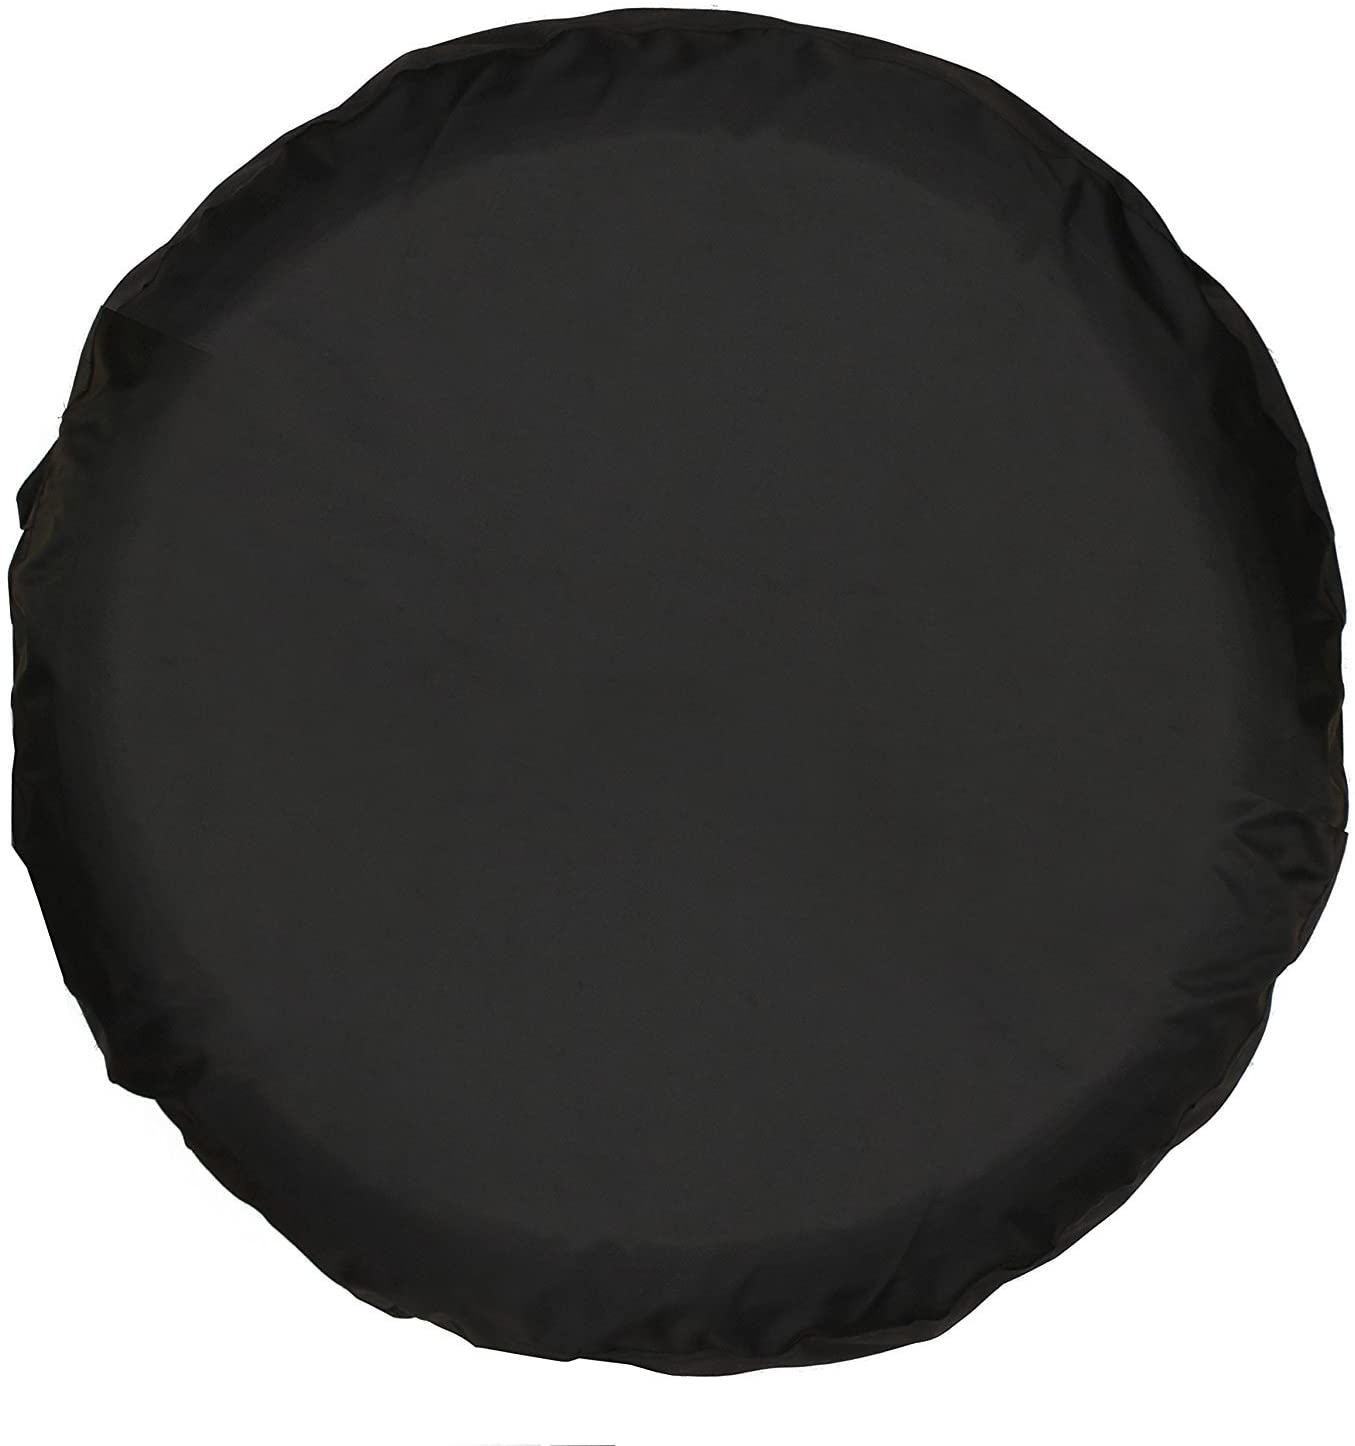 Moonet PVC Thickening Leather Spare Tire Cover (27-30 inch)